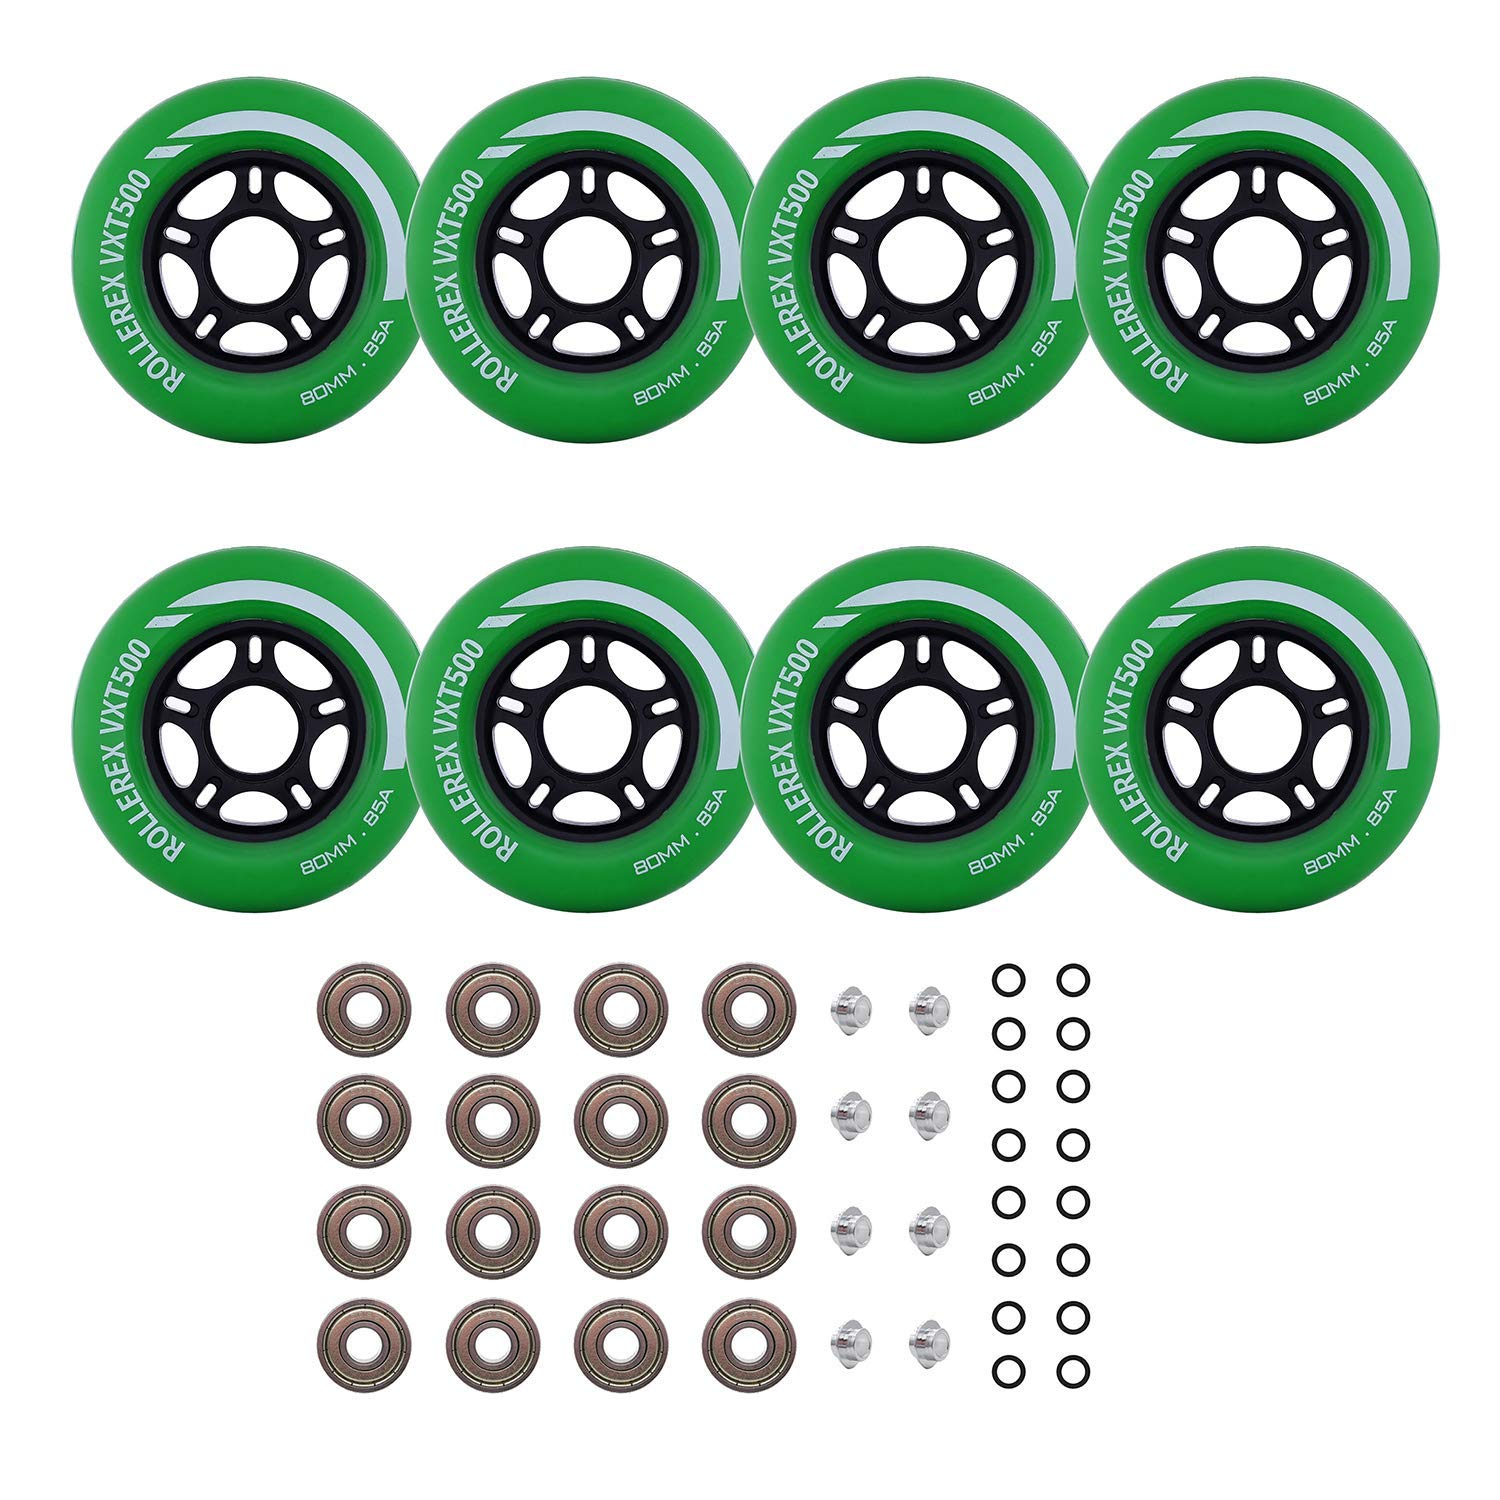 Rollerex Inline Skate Wheels VXT500 80mm (8-Pack or 2-Pack or 2 Wheels w/Bearings, Spacers and Washers) (72mm Turf Green (8 Wheels w/Bearings, spacers and washers)) by Rollerex